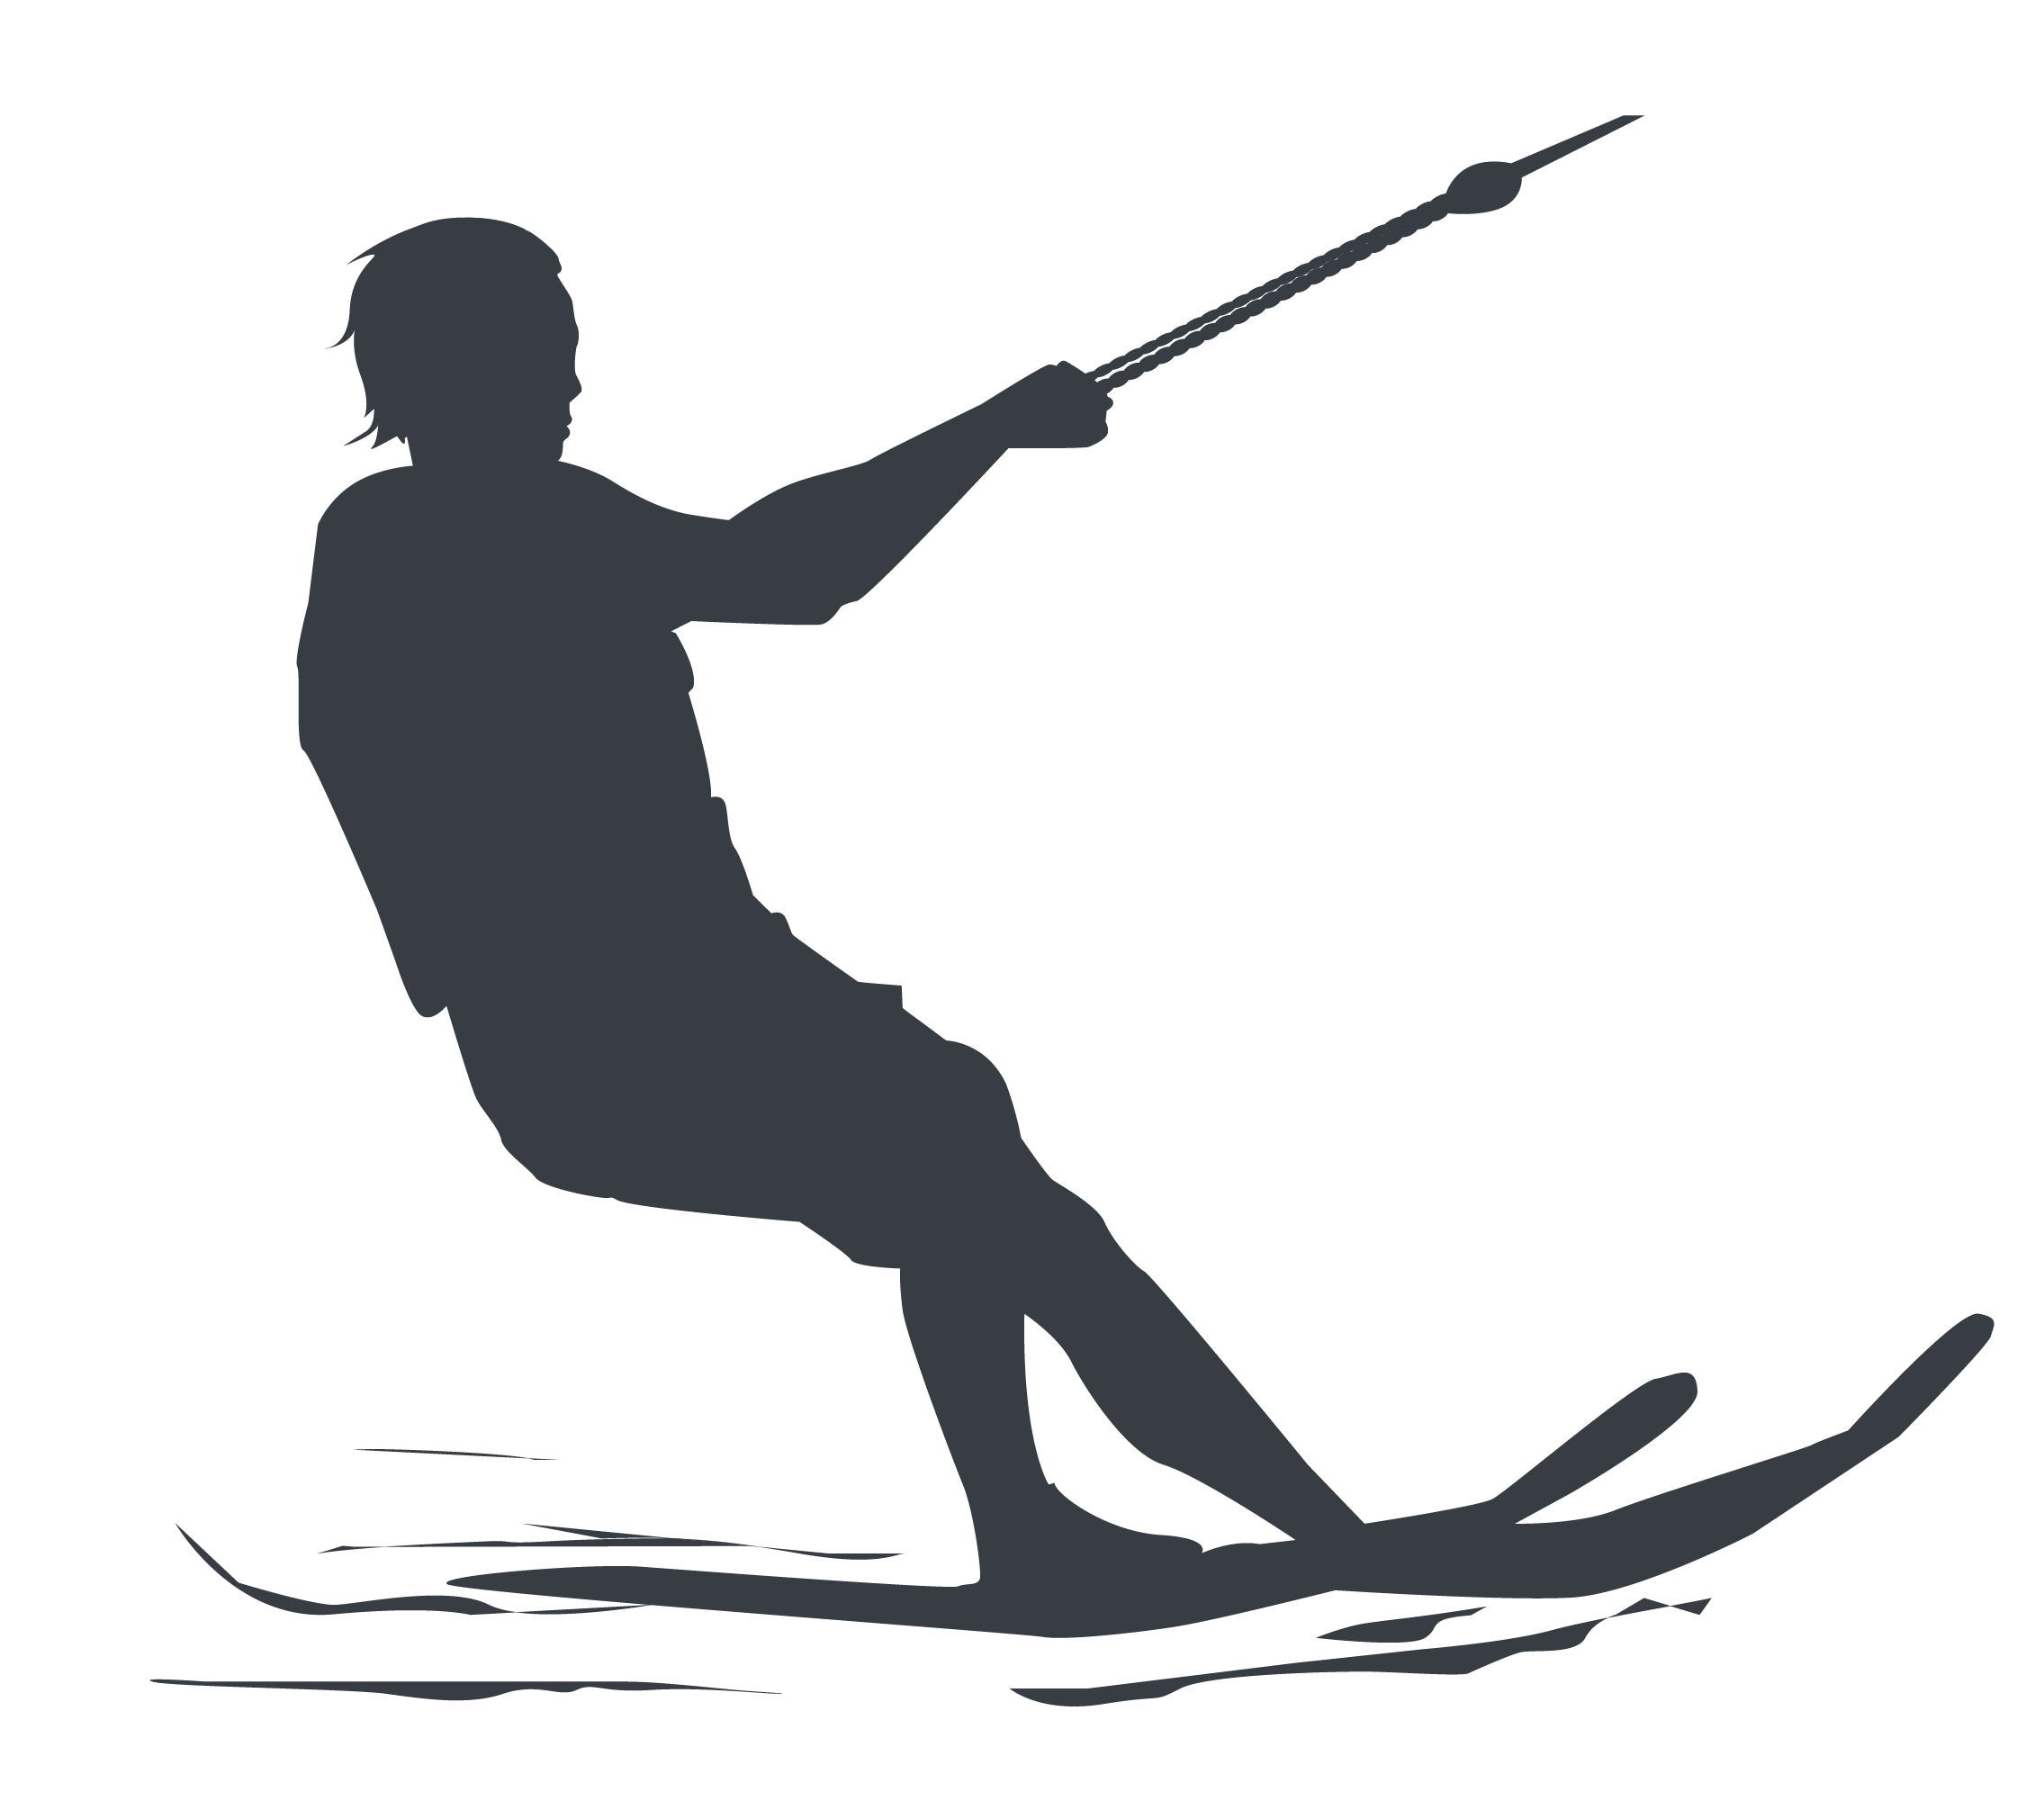 Ski clip skier silhouette. Water skiing active safe